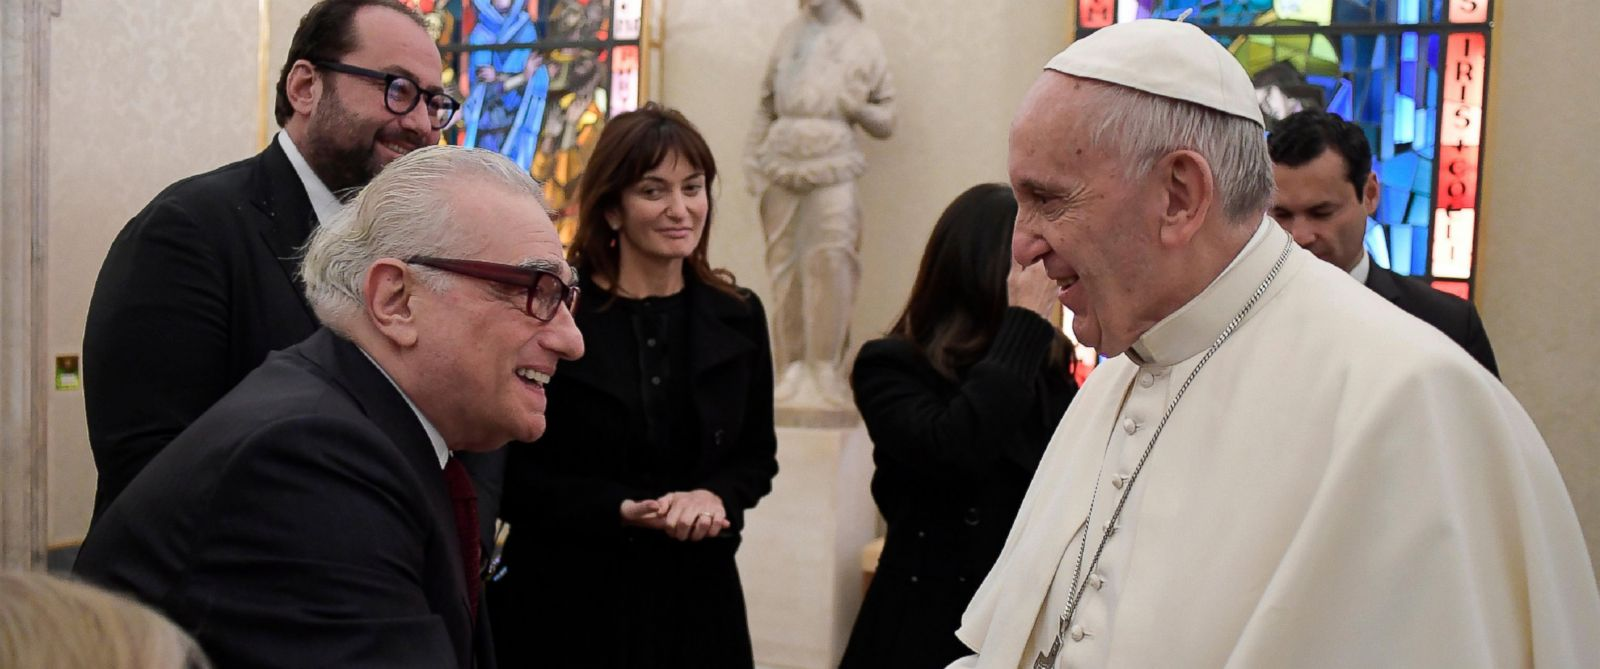 PHOTO: Pope Francis shakes hands with director Martin Scorsese, left, during their private audience at the Vatican, Nov. 30, 2016.